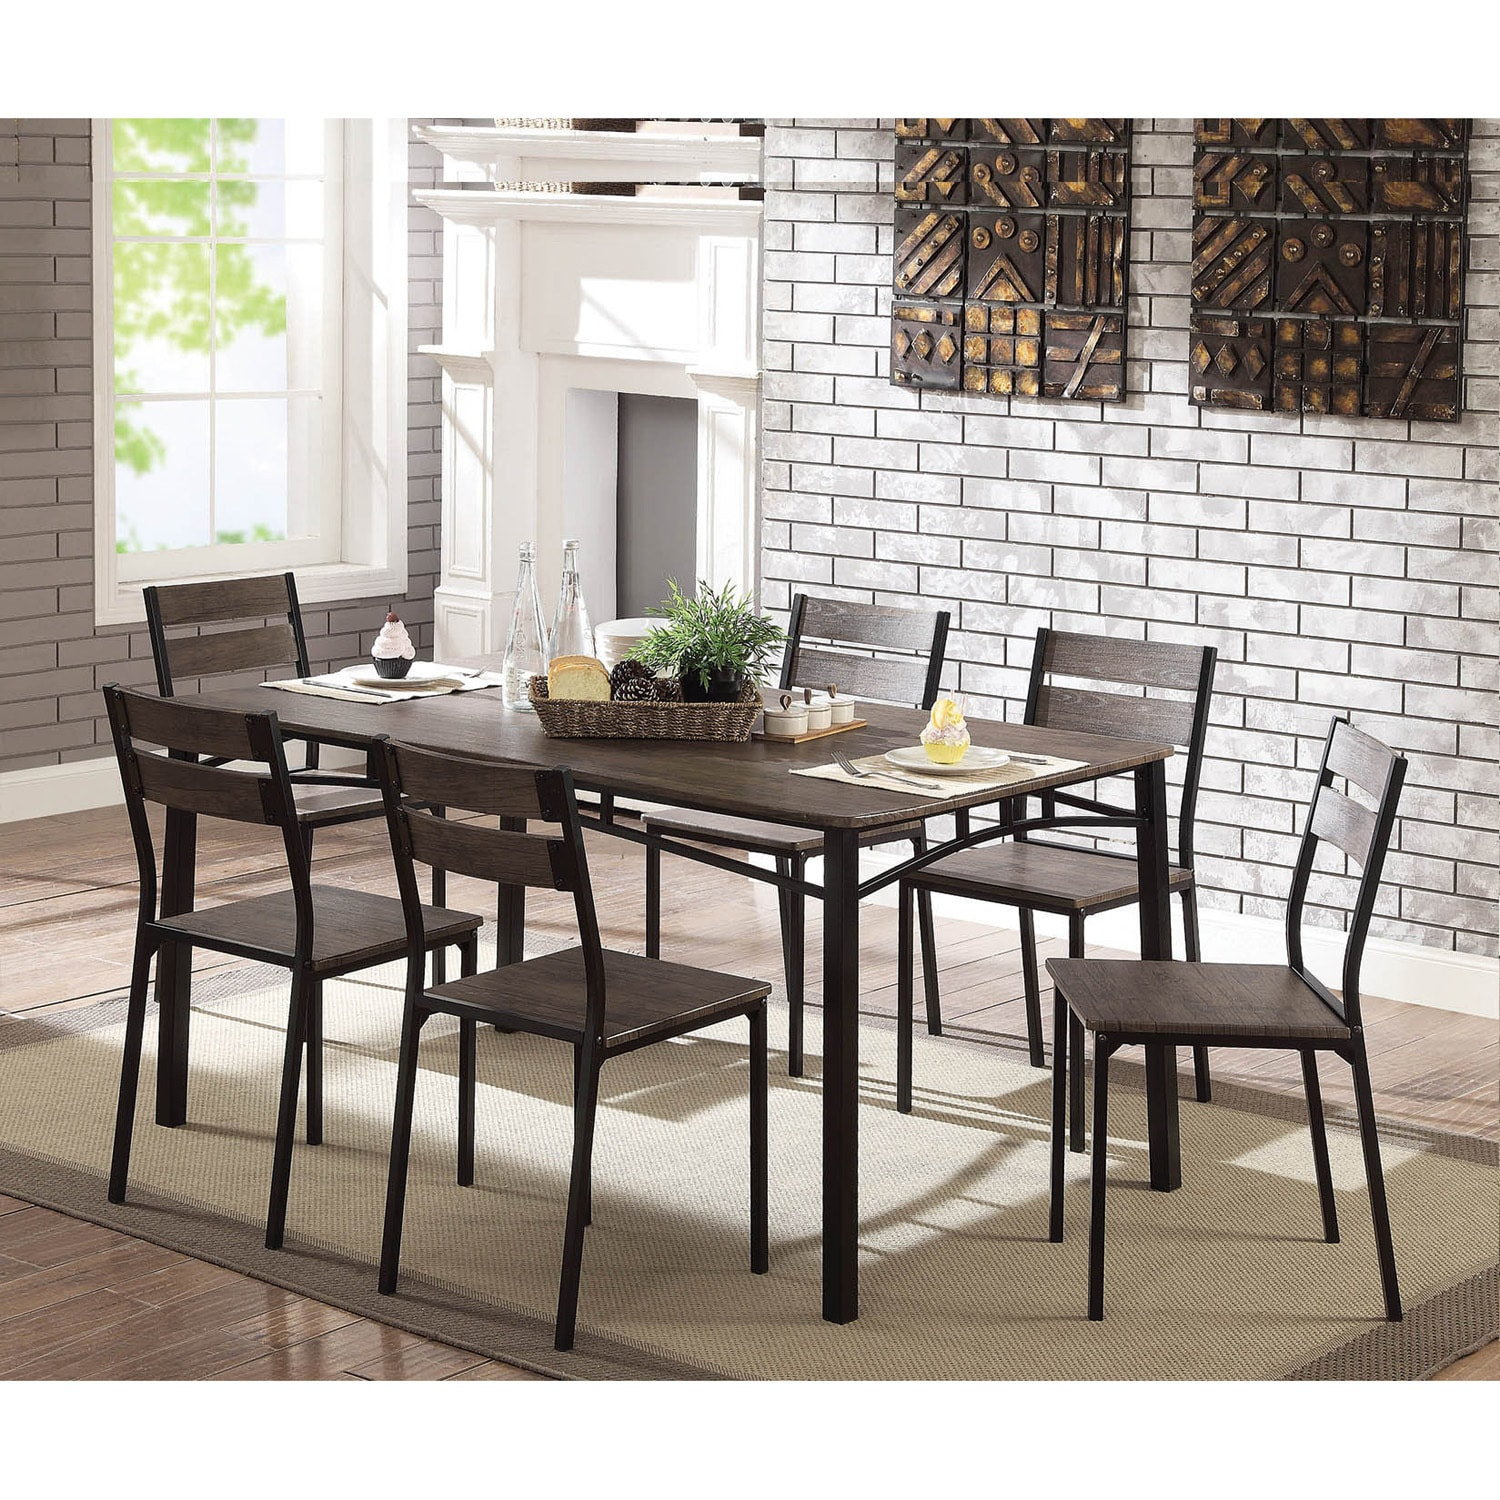 Shop furniture of america patton 7 piece rustic modern farmhouse dining table set on sale free shipping today overstock com 22671341